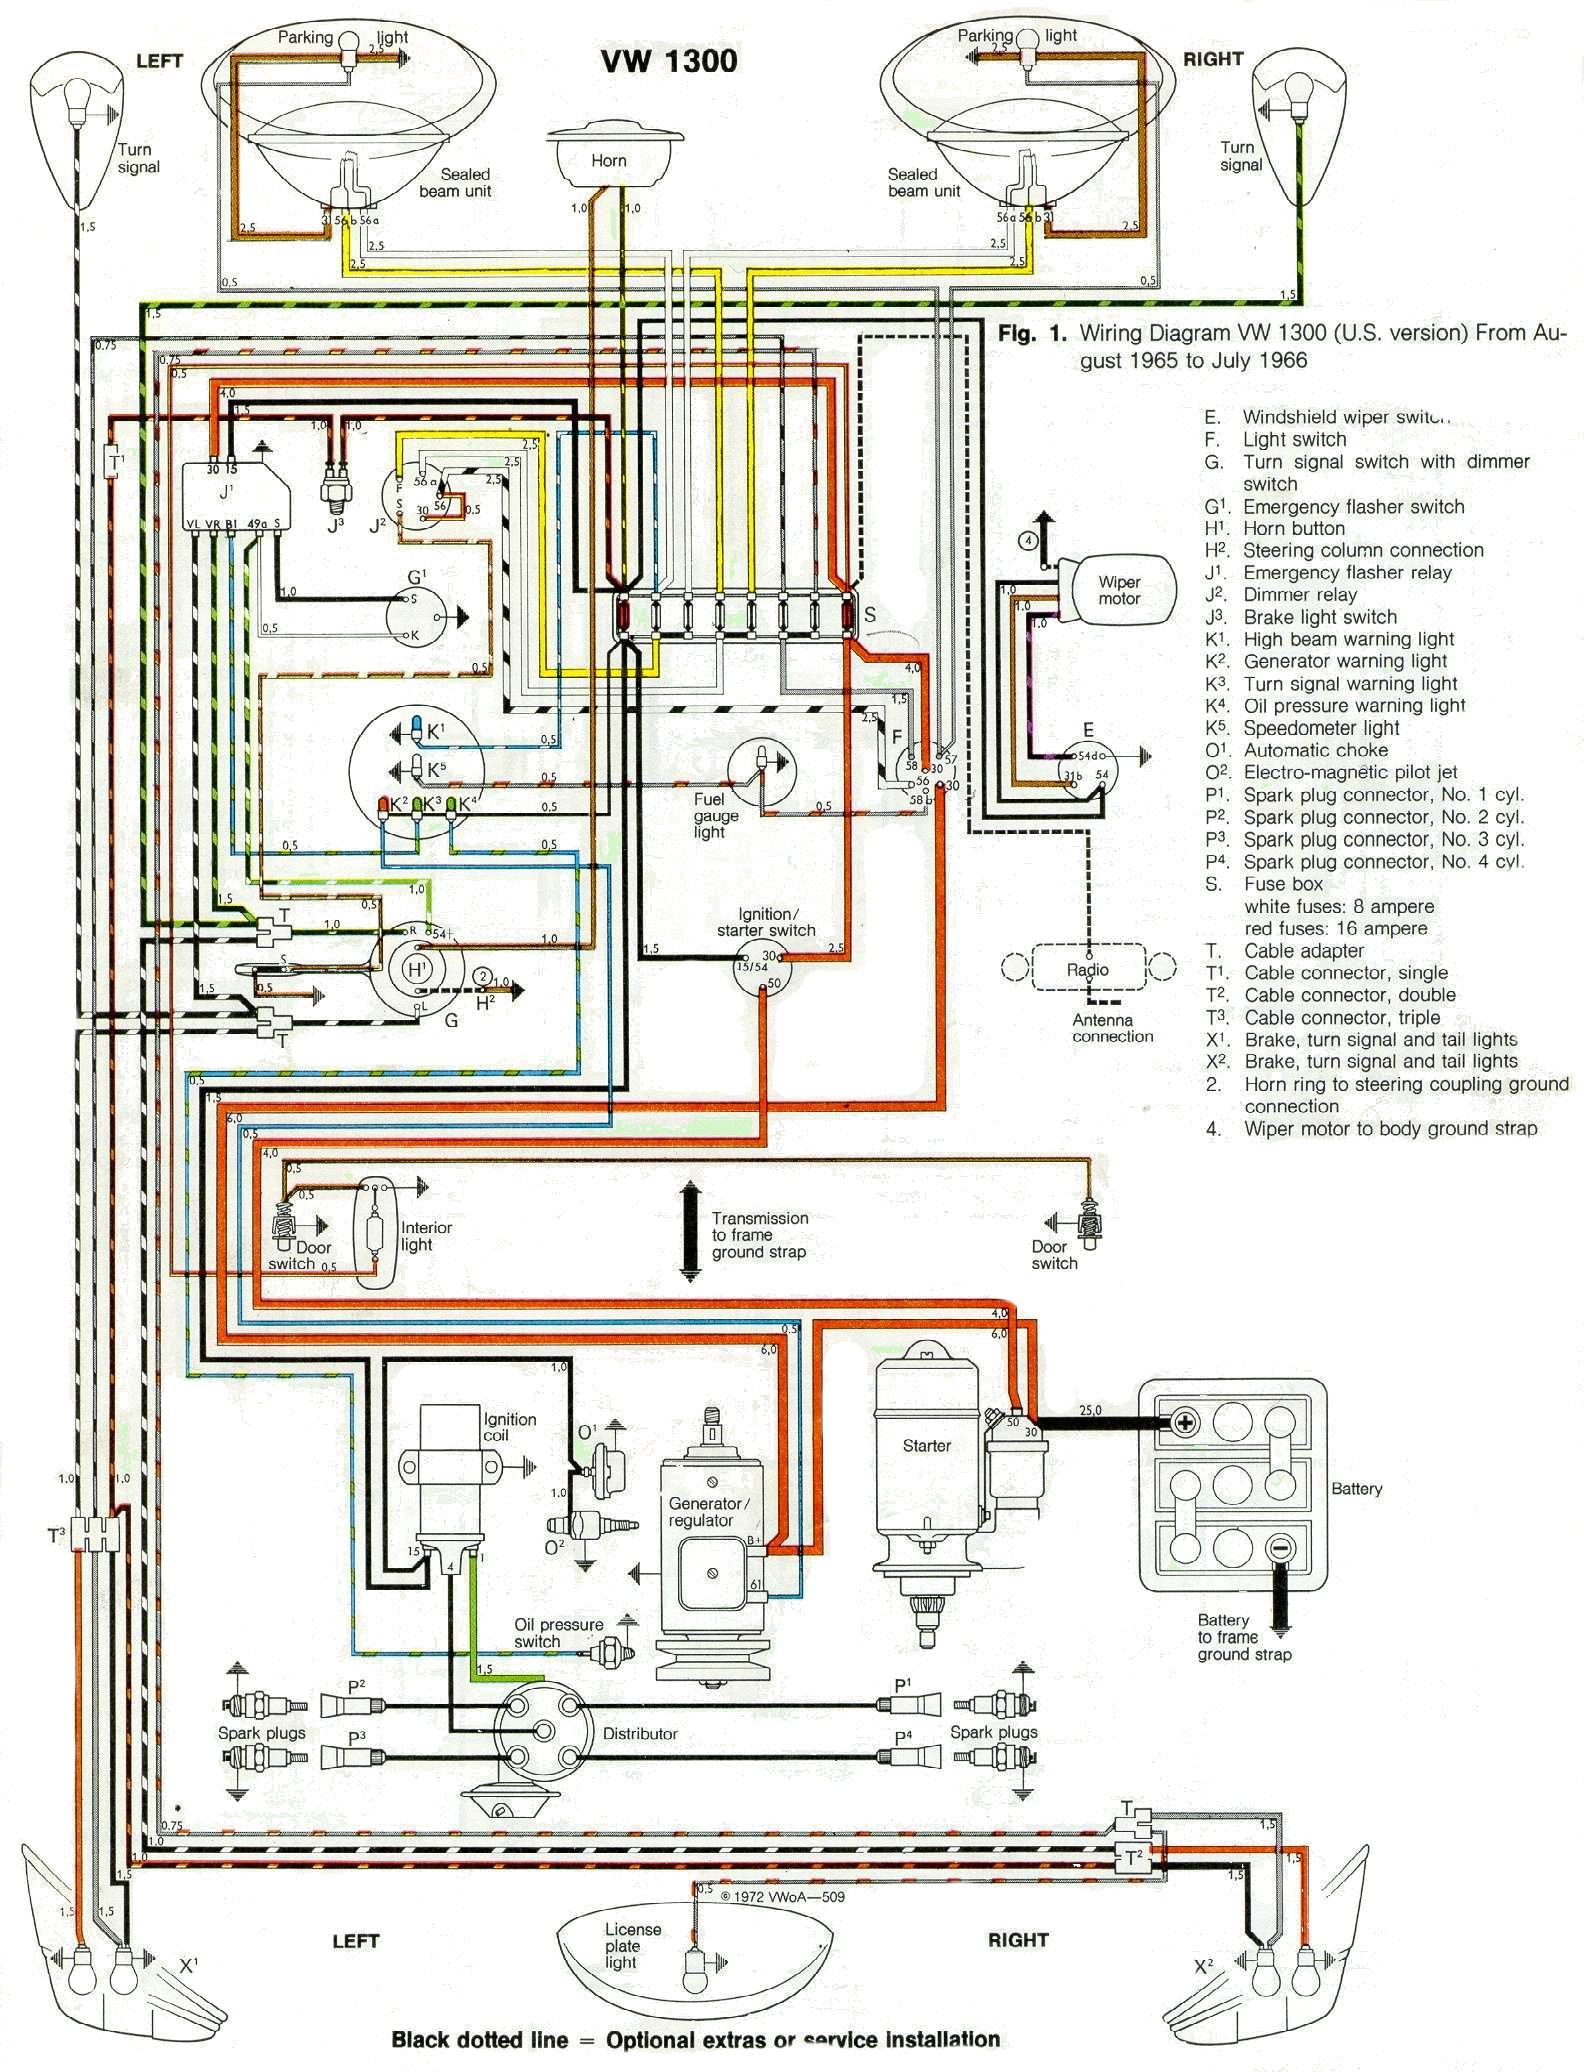 hight resolution of 1966 wiring diagram vw beetle engine tuning vw beetle wiring